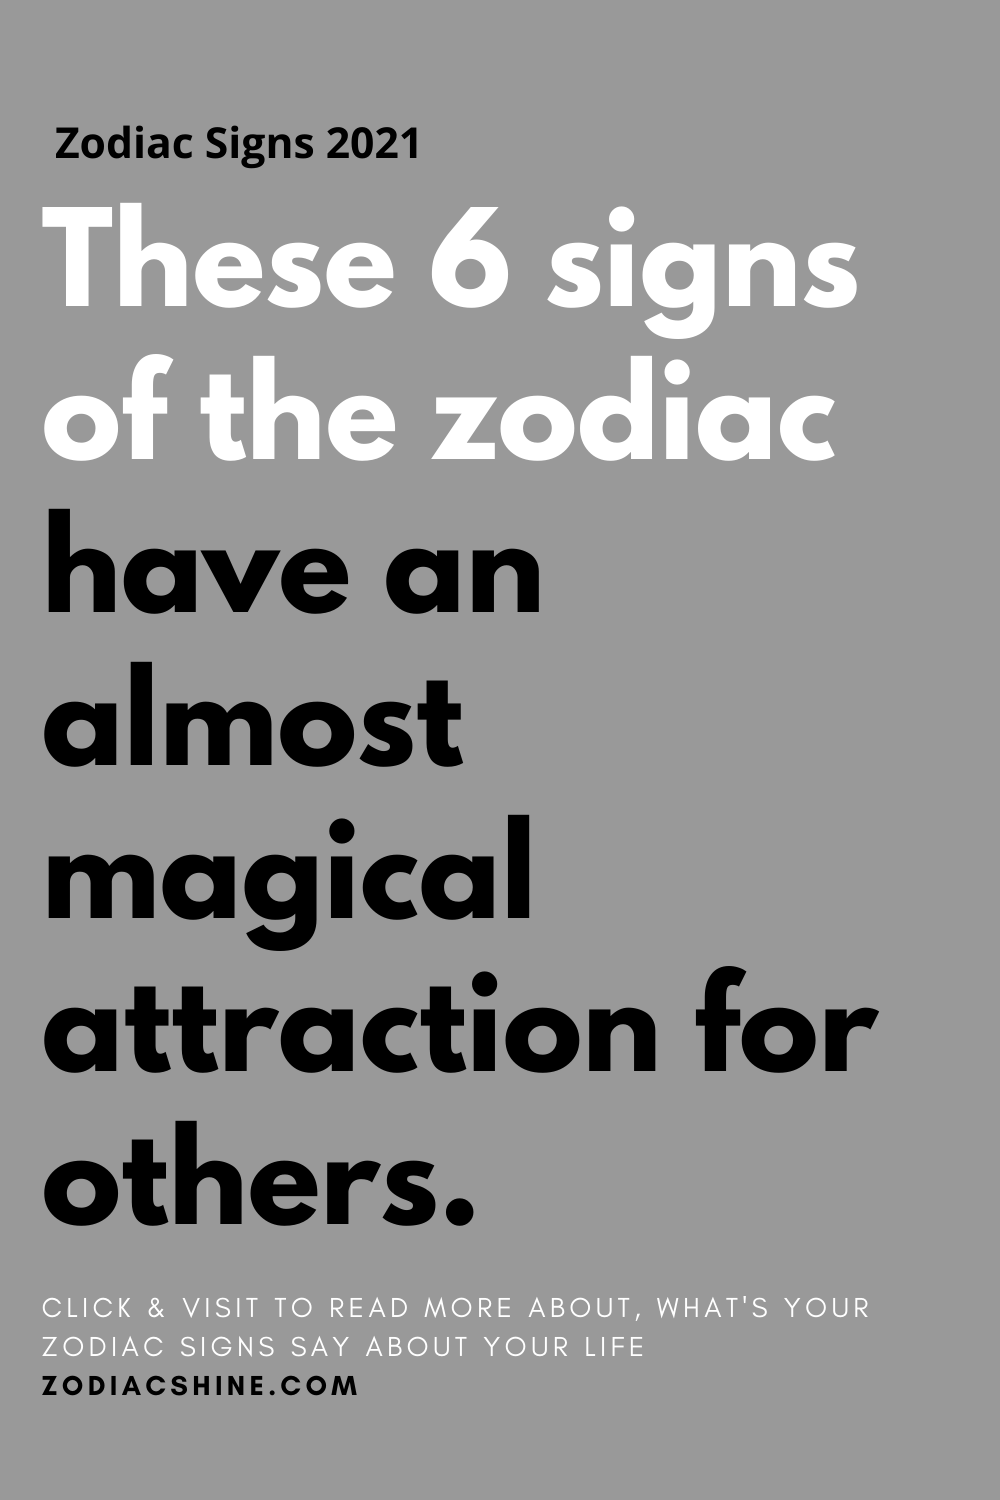 These 6 signs of the zodiac have an almost magical attraction for others.